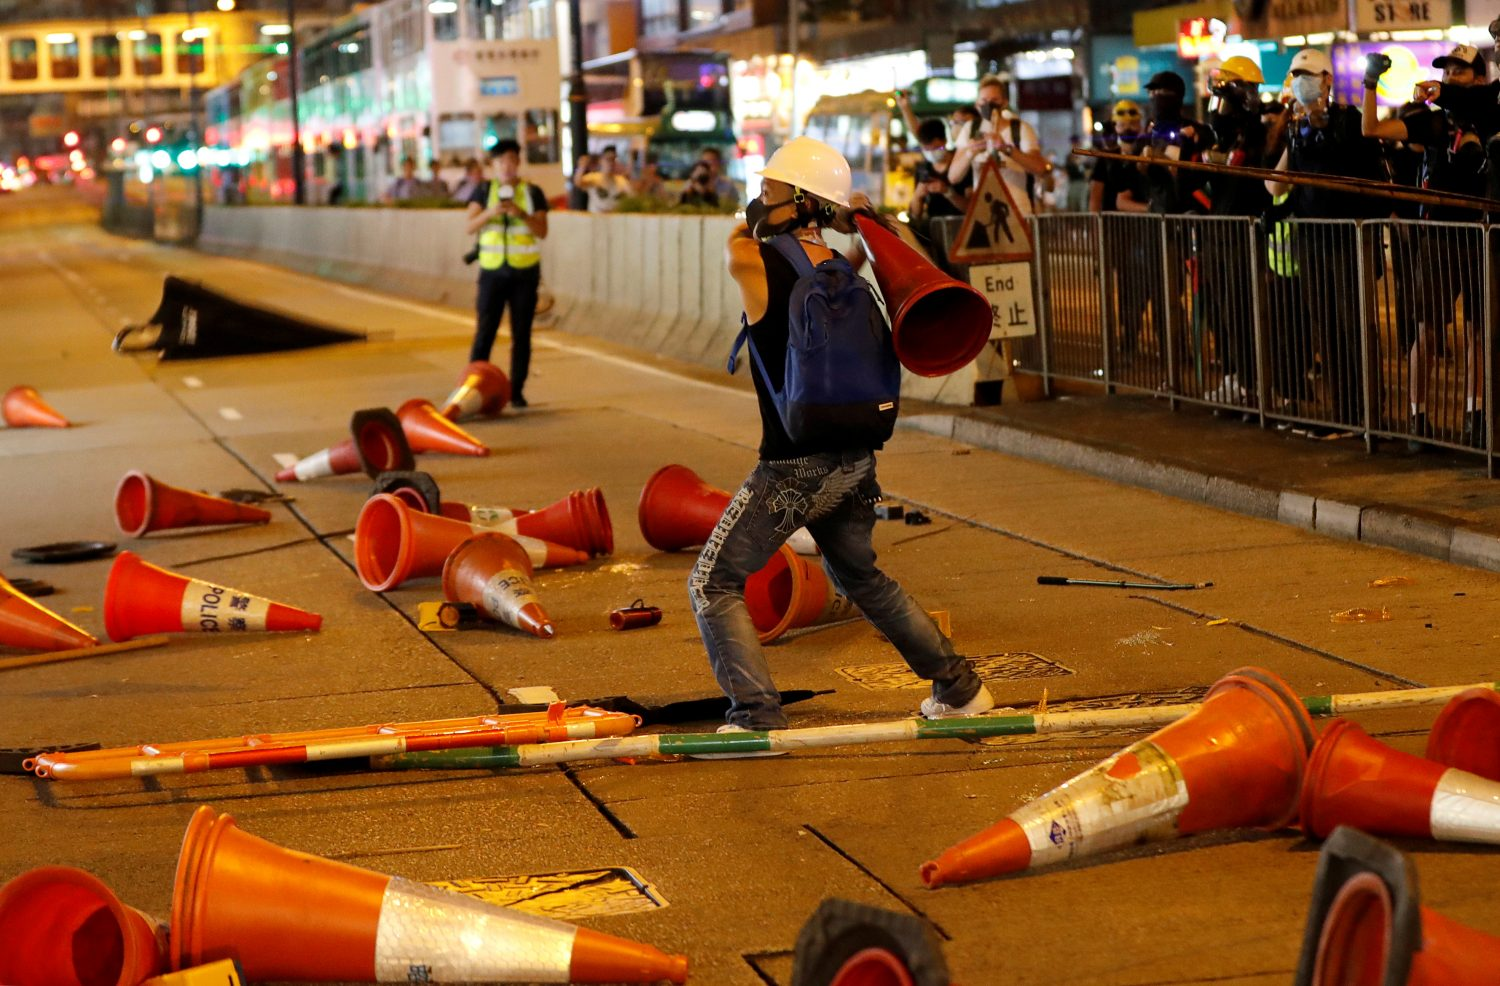 A demonstrator throws a traffic cone at a group of people opposing the anti-government protesters, during a demonstration in support of the city-wide strike and to call for democratic reforms in Hong Kong, China, August 5, 2019. REUTERS/Kim Kyung-Hoon